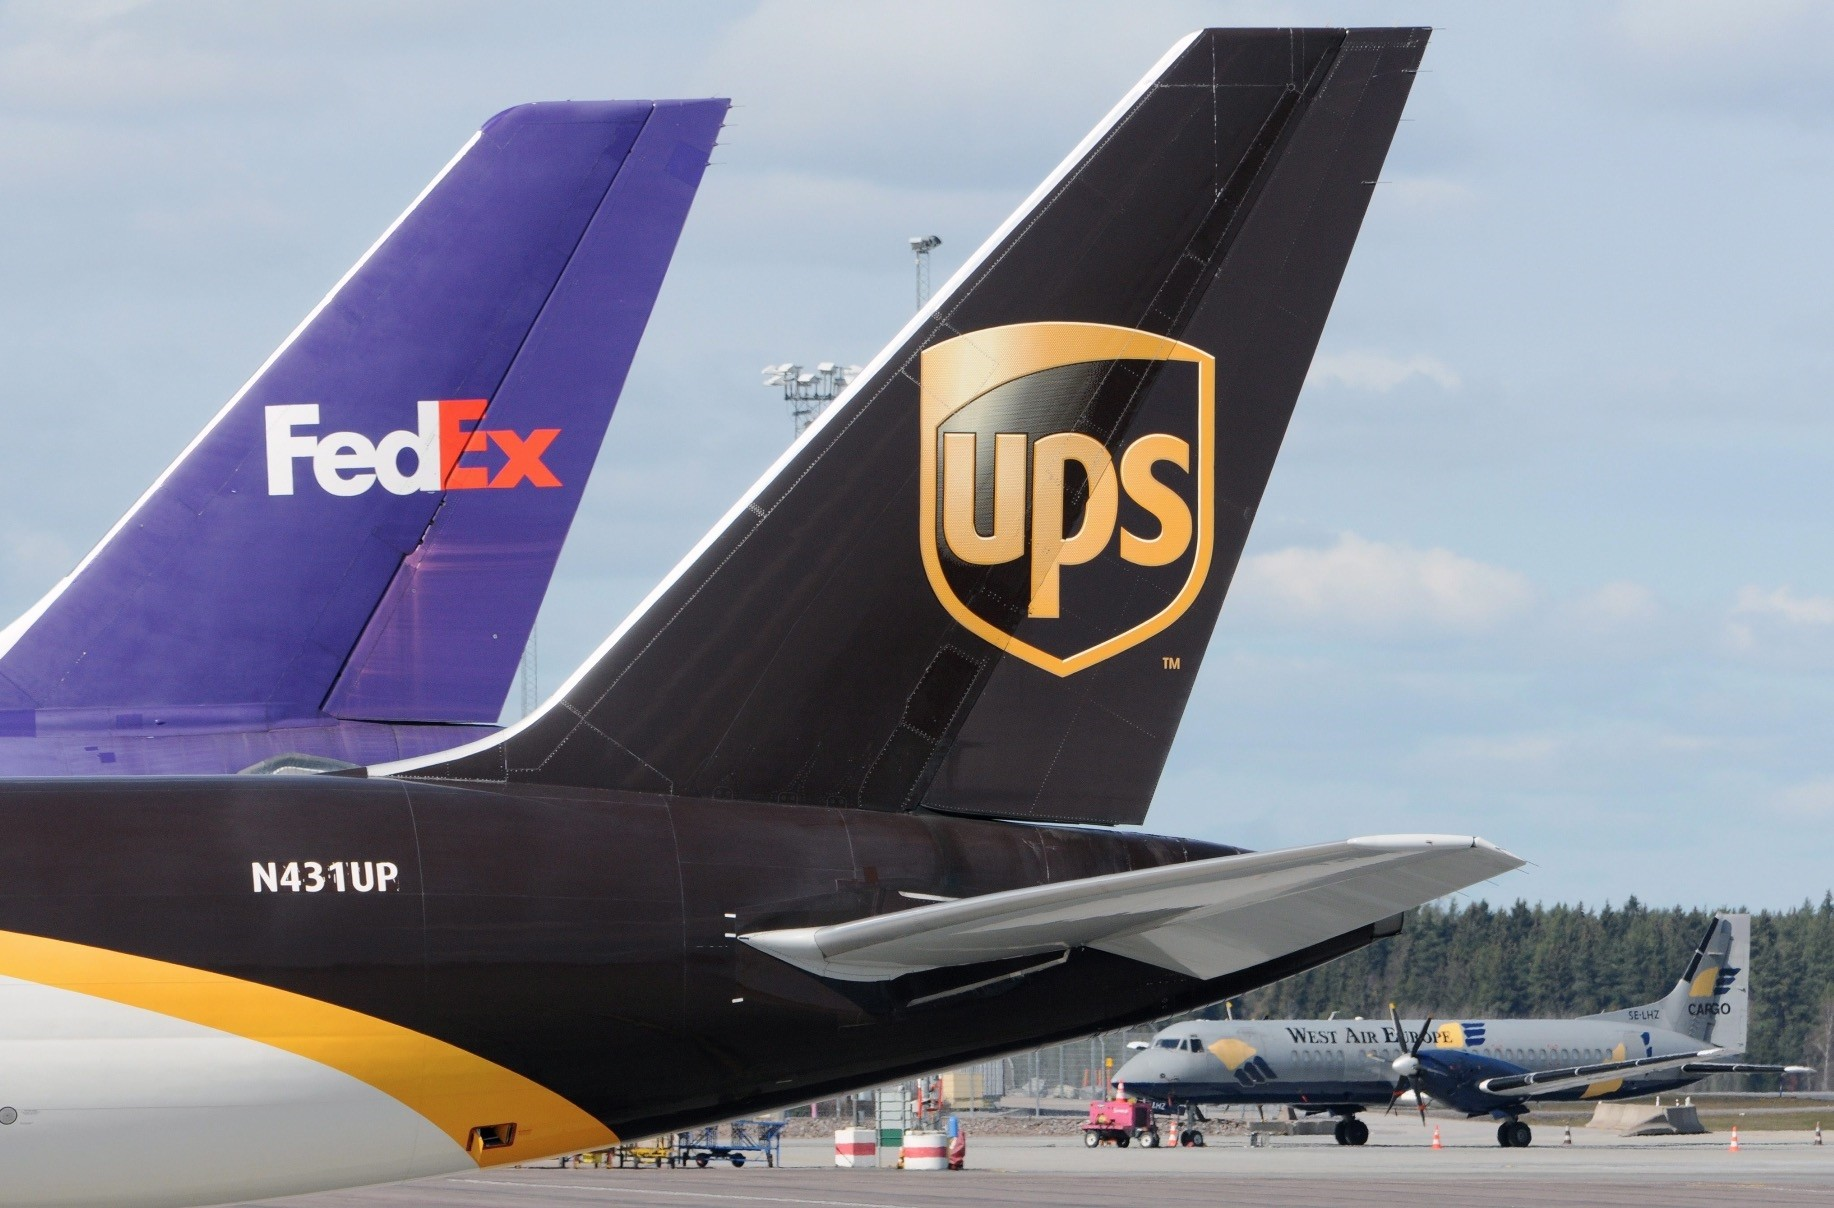 United Postal Service (UPS), DHL and FedEx have been reported to submit their bids to lease areas to run shipping and cargo freight operations in Istanbulu2019s new airport due to start operating on Oct. 29.